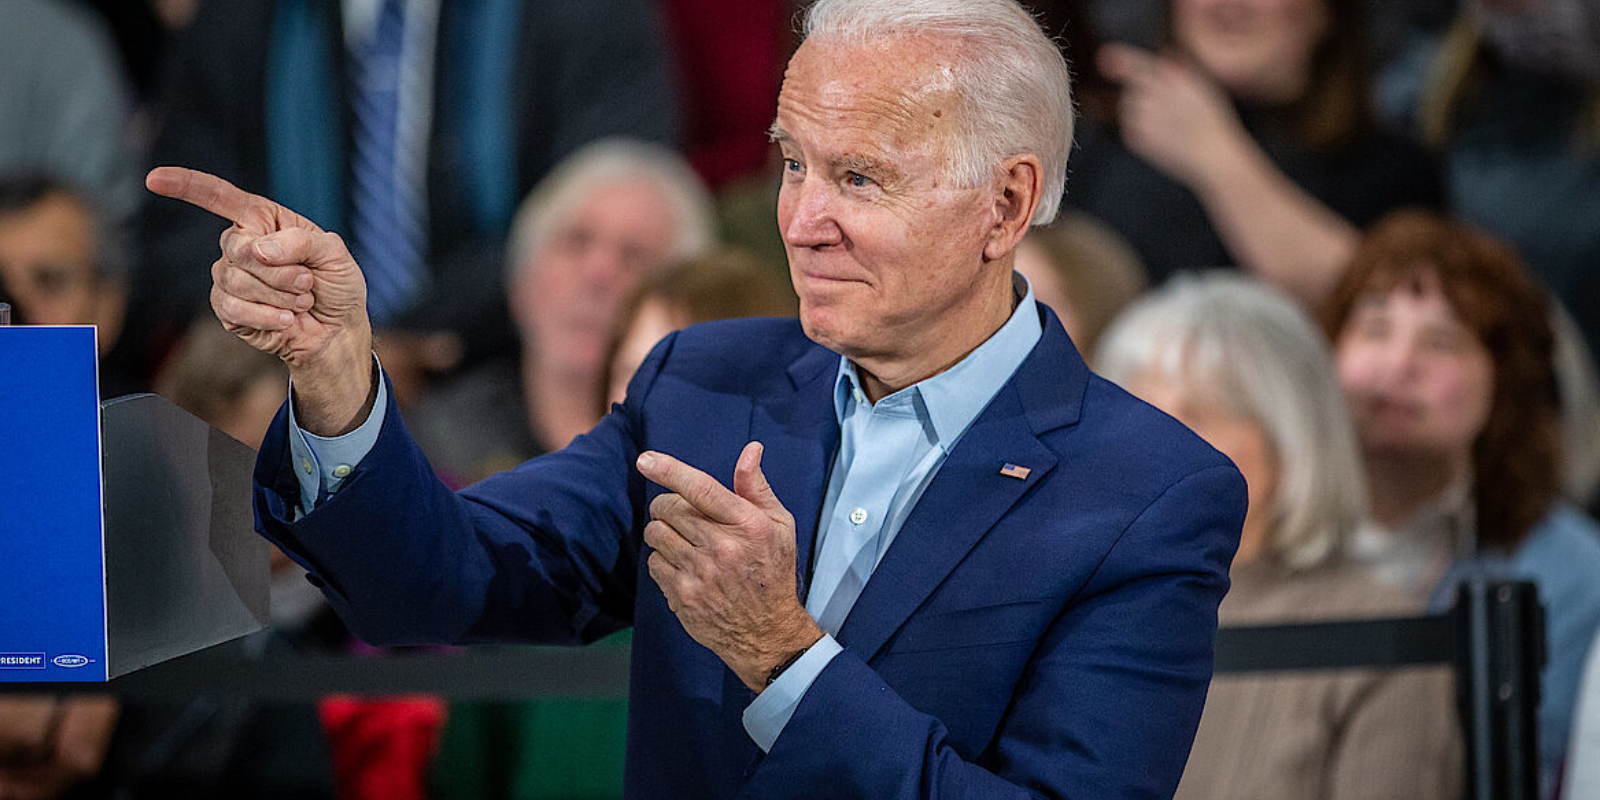 Biden team disables chat on Zoom conferences to avoid questions from journalists